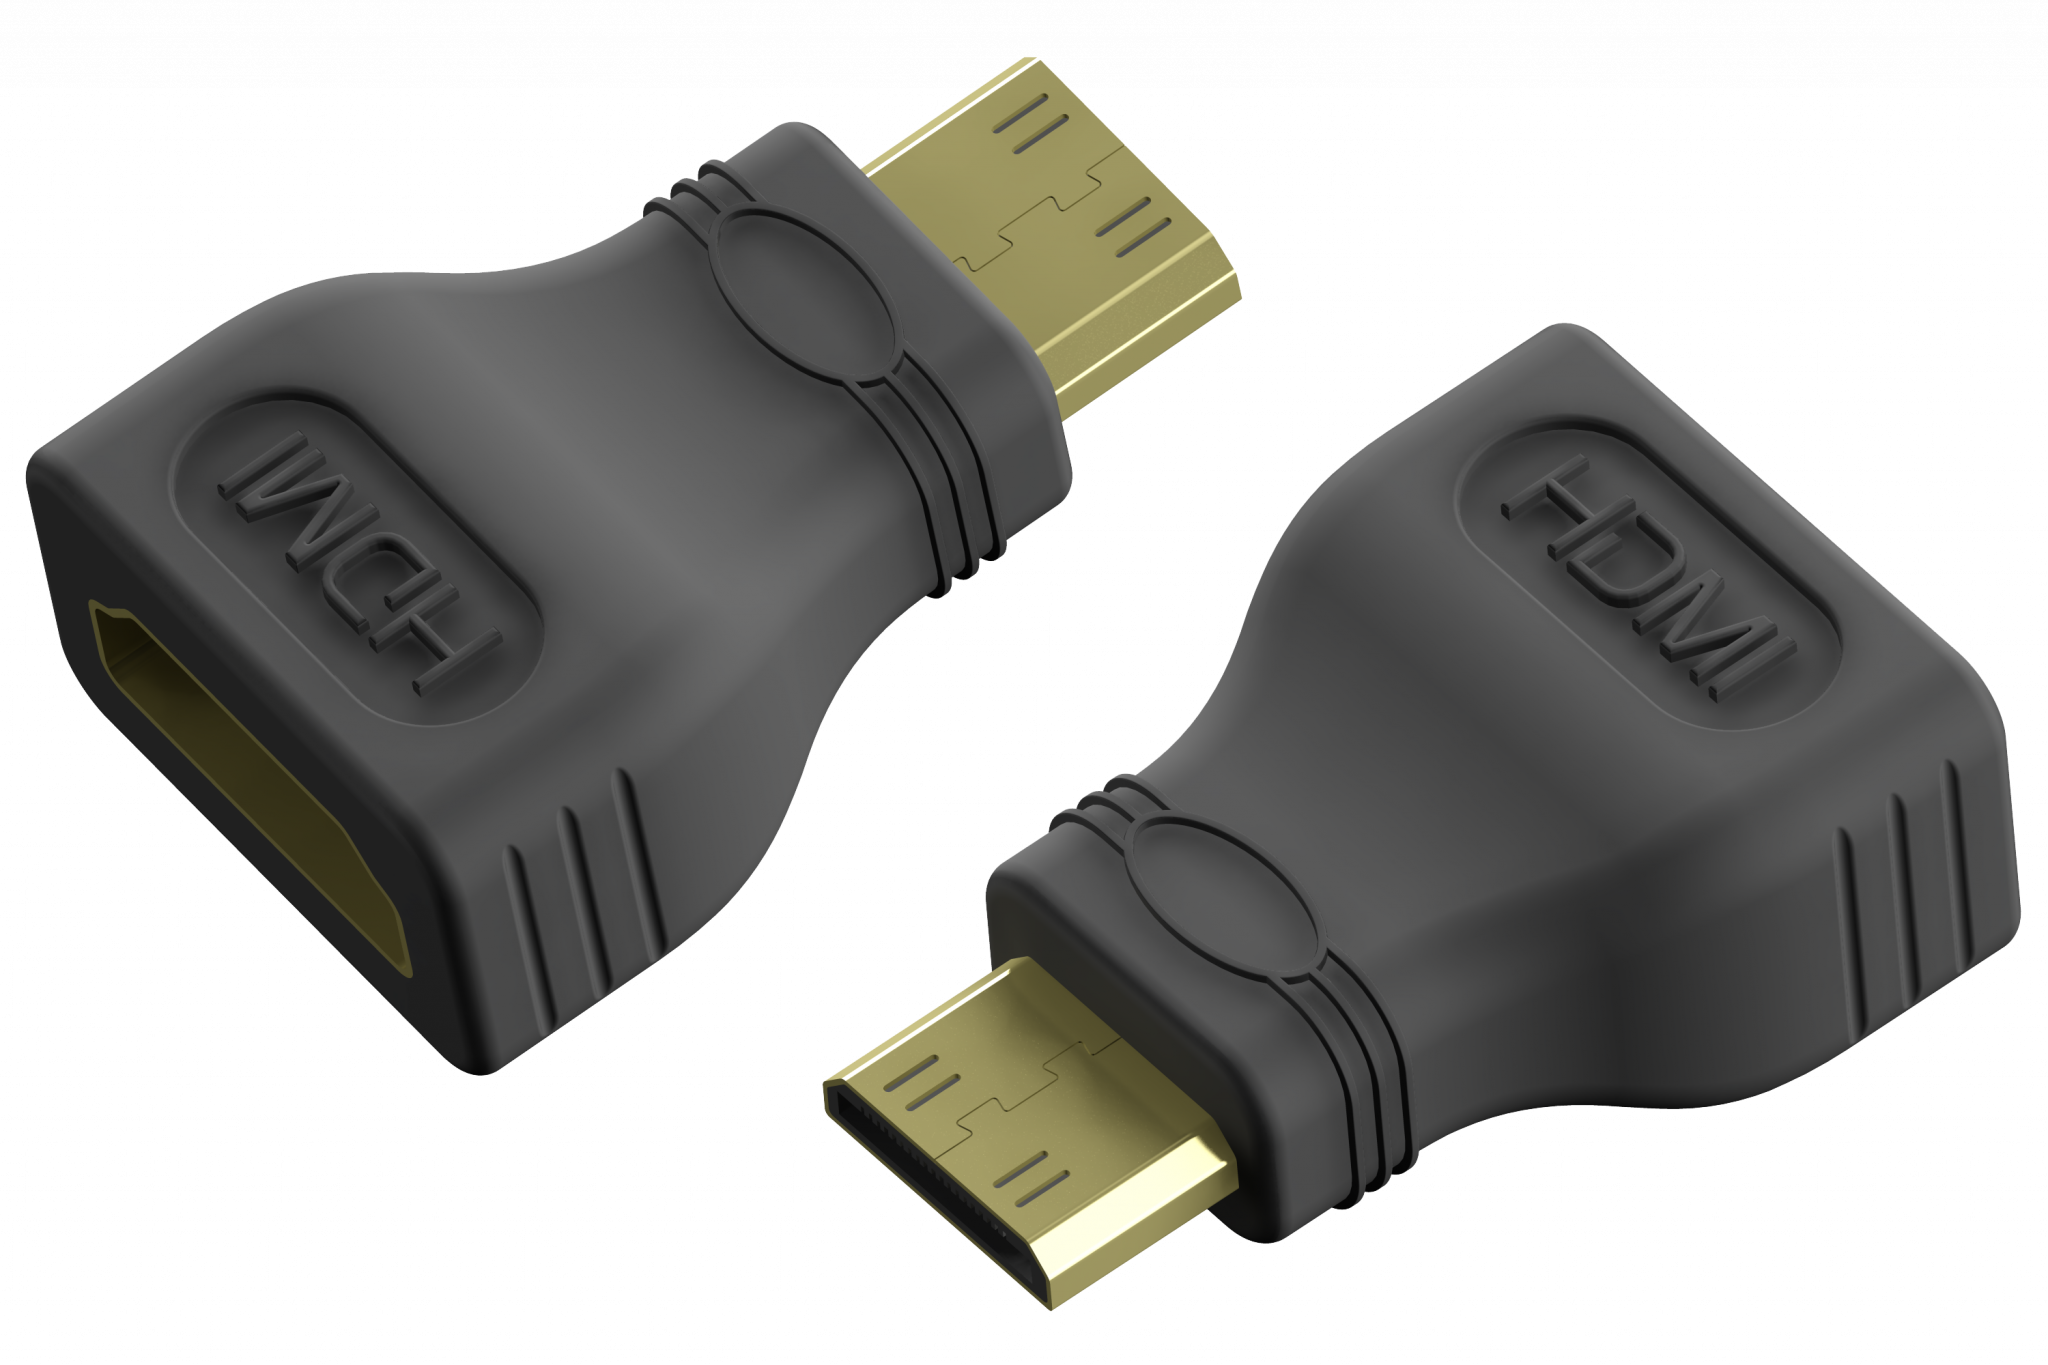 Mini-HDMI to HDMI Adaptor